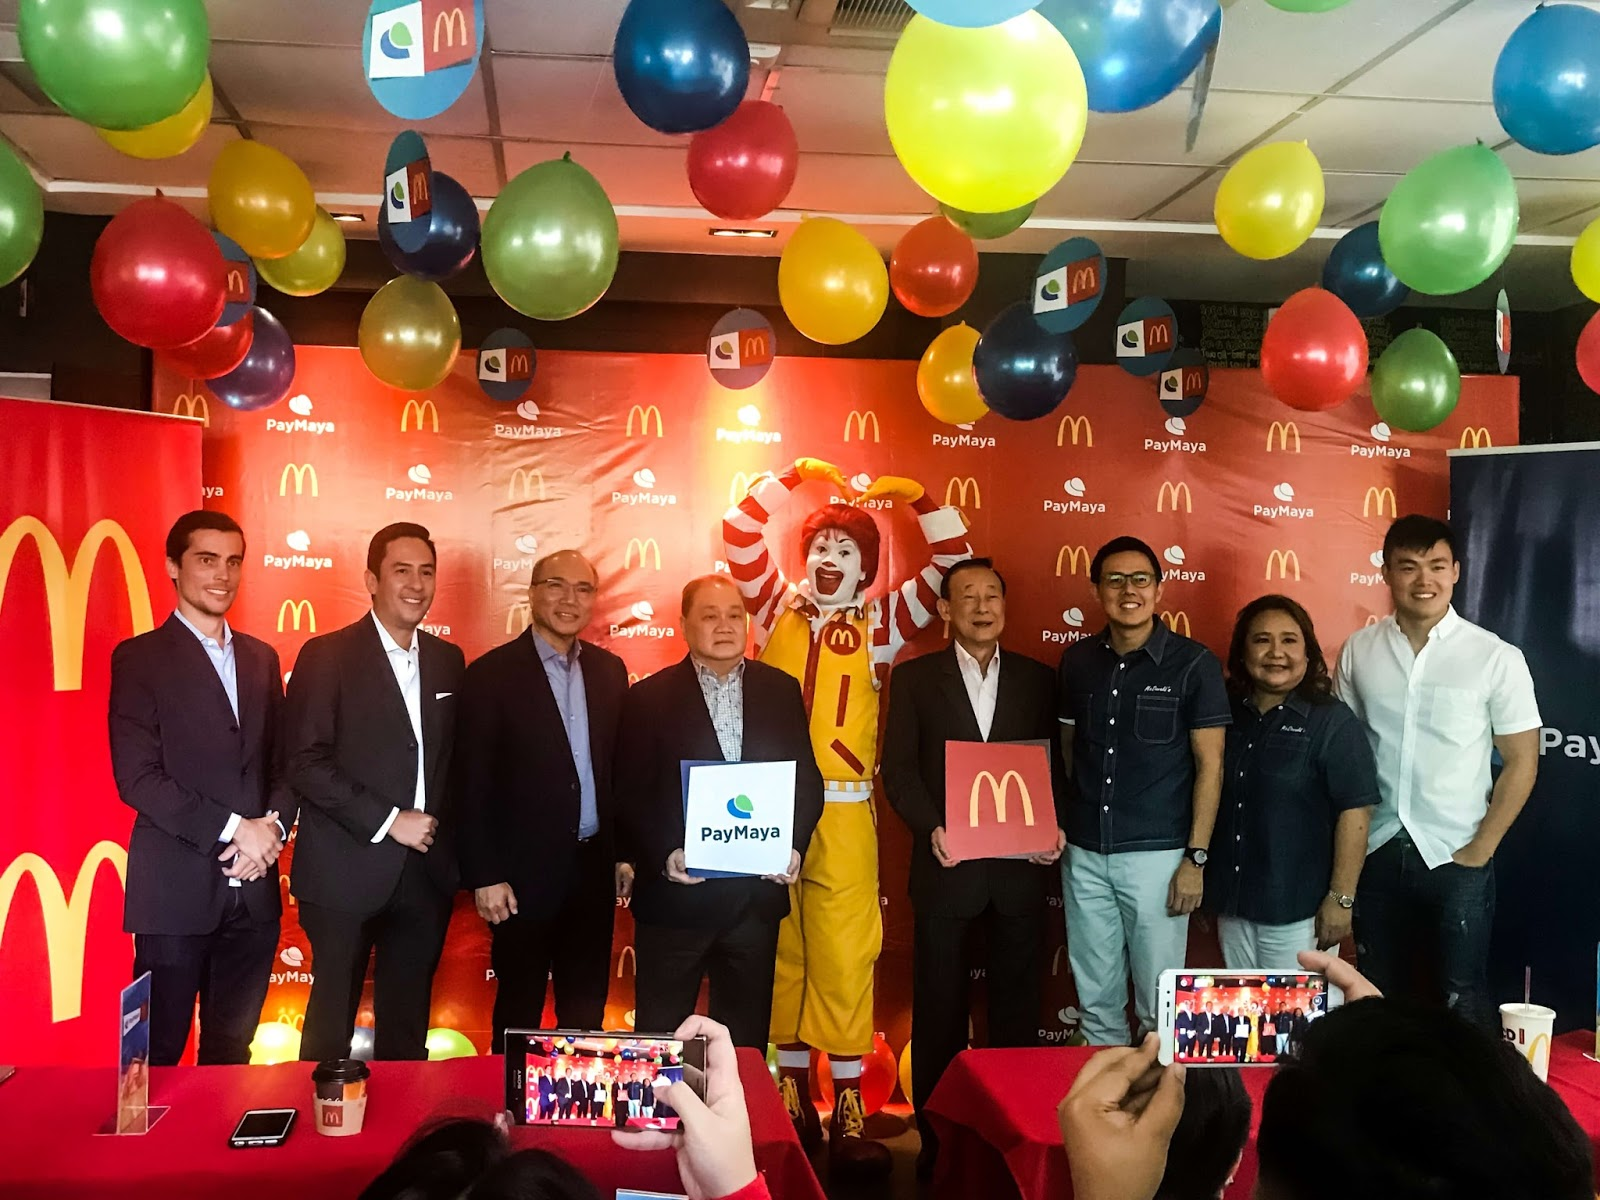 McDonald's Rolls Out Cashless Payments through PayMaya